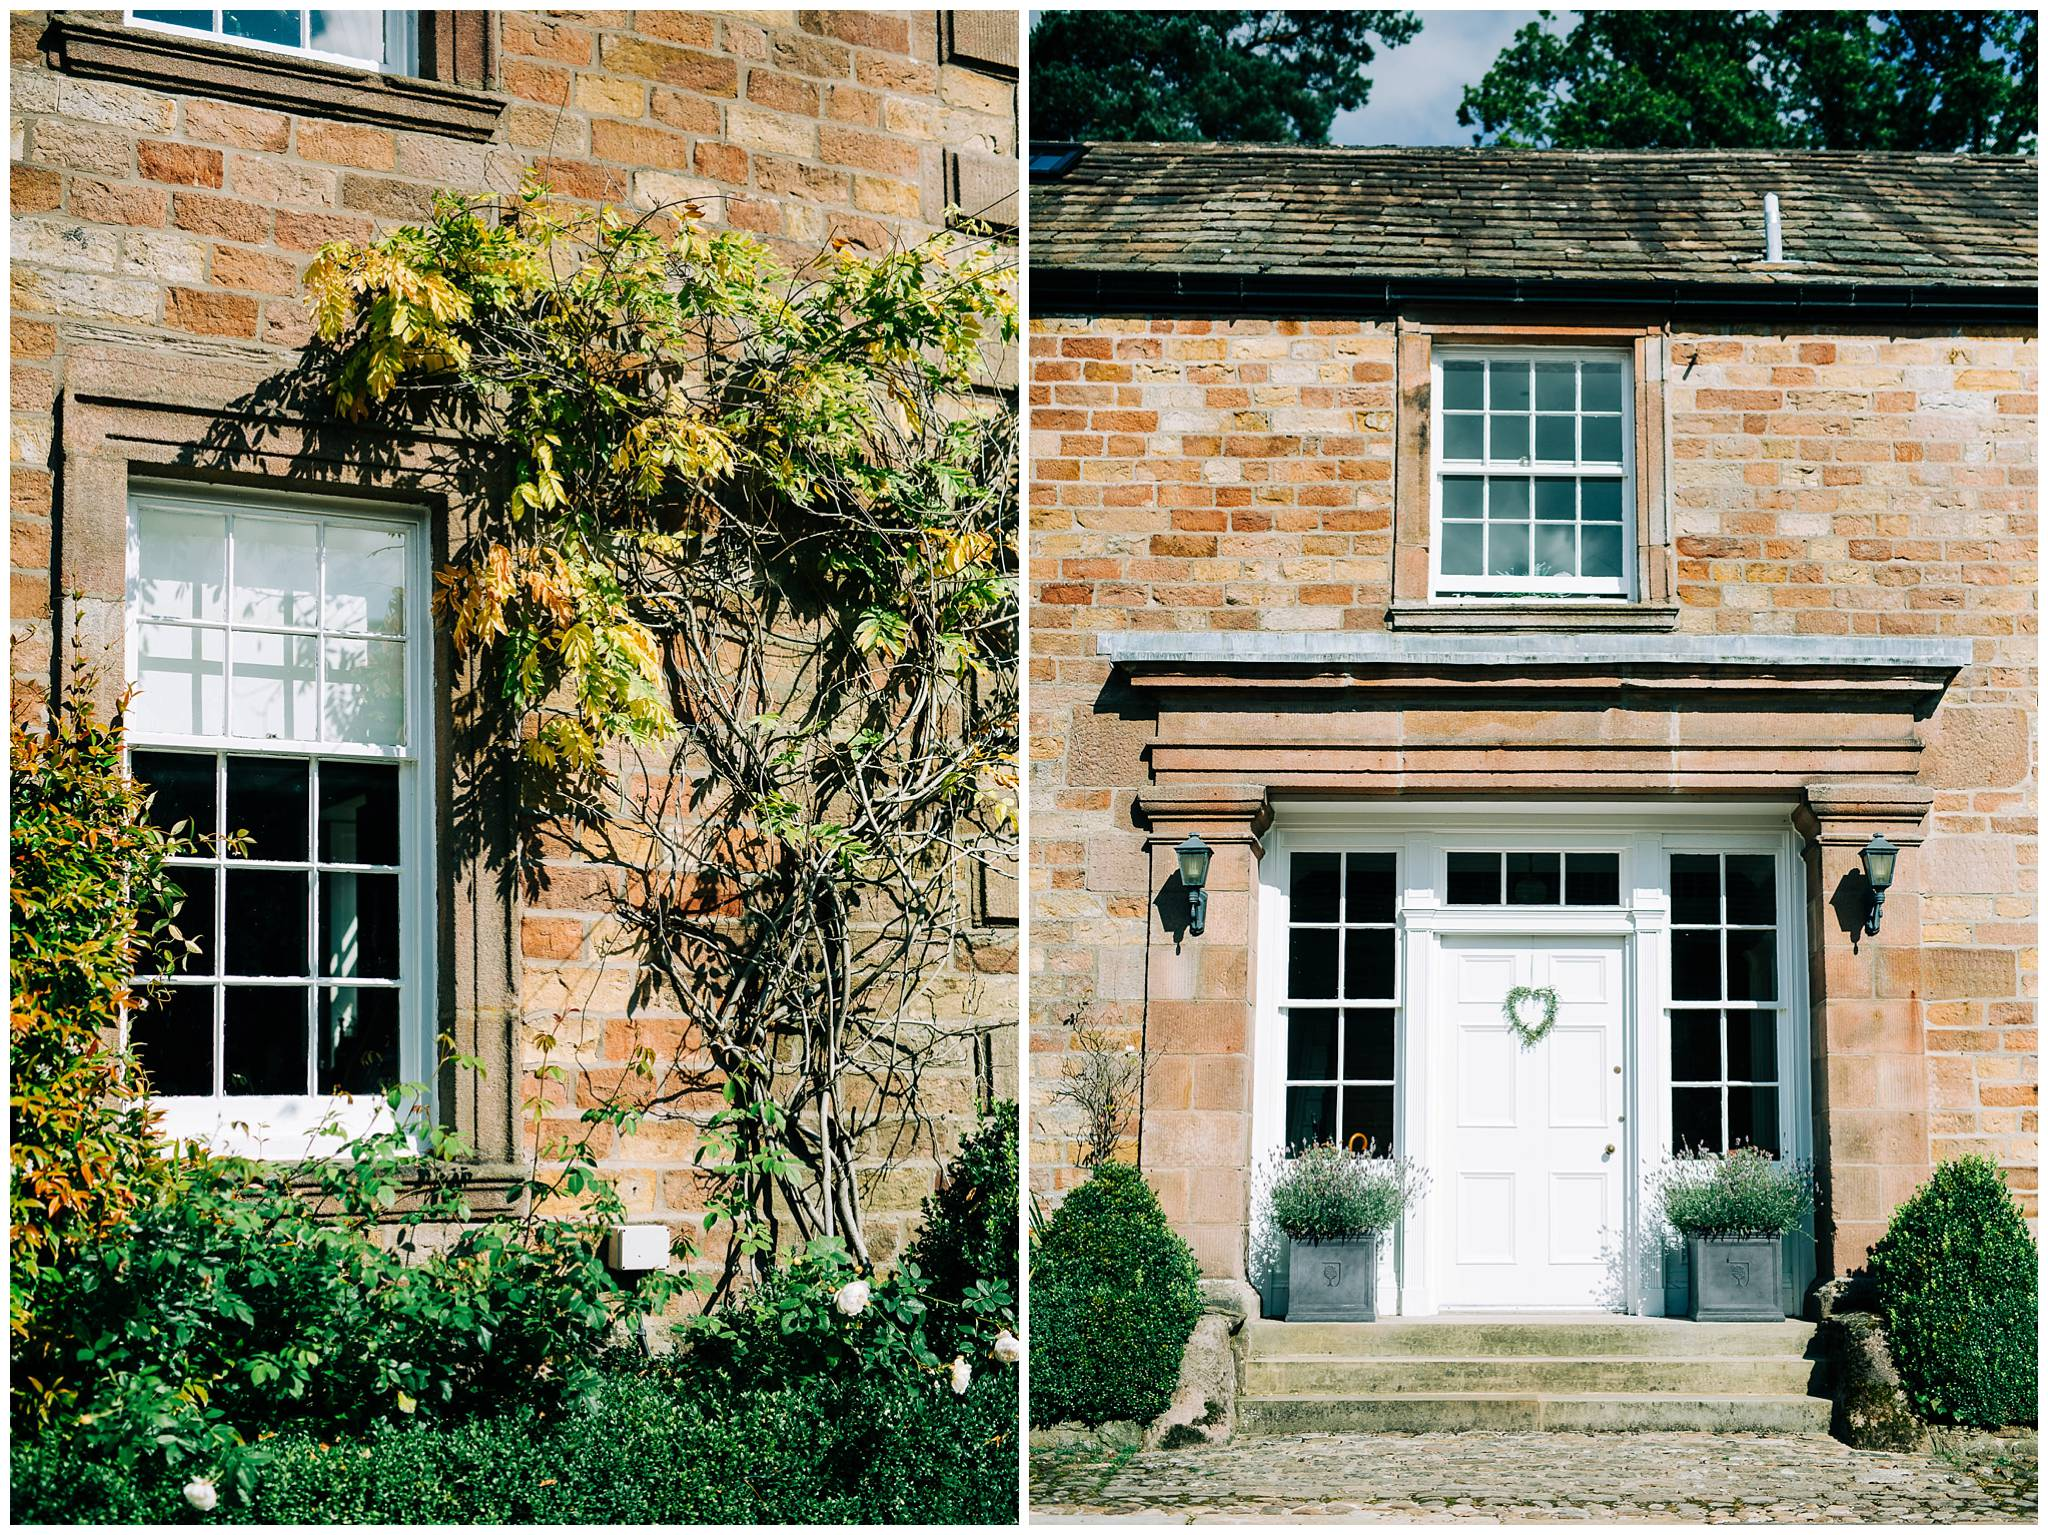 detail images of the building on the Browsholme estate, such a wysteria and sash window